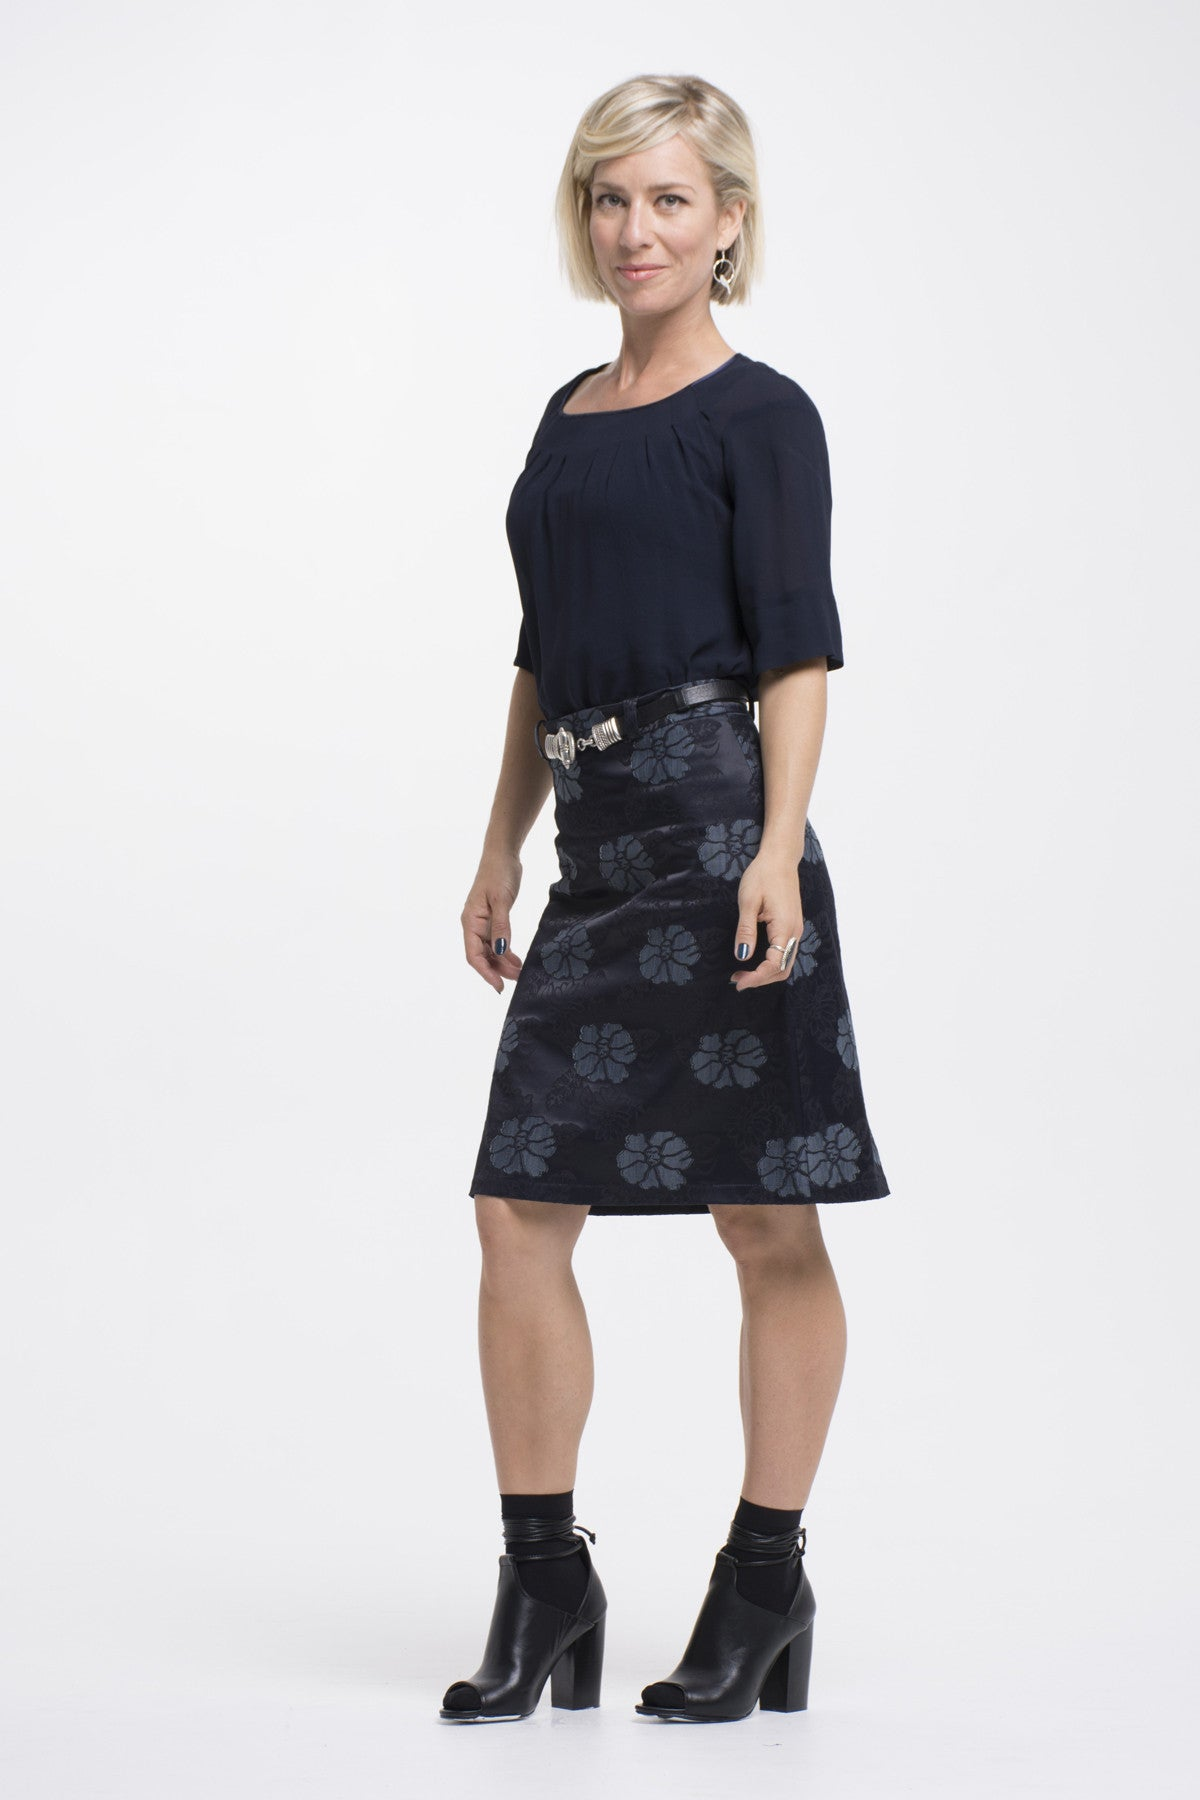 Vesta Macbeth Skirt - Navy